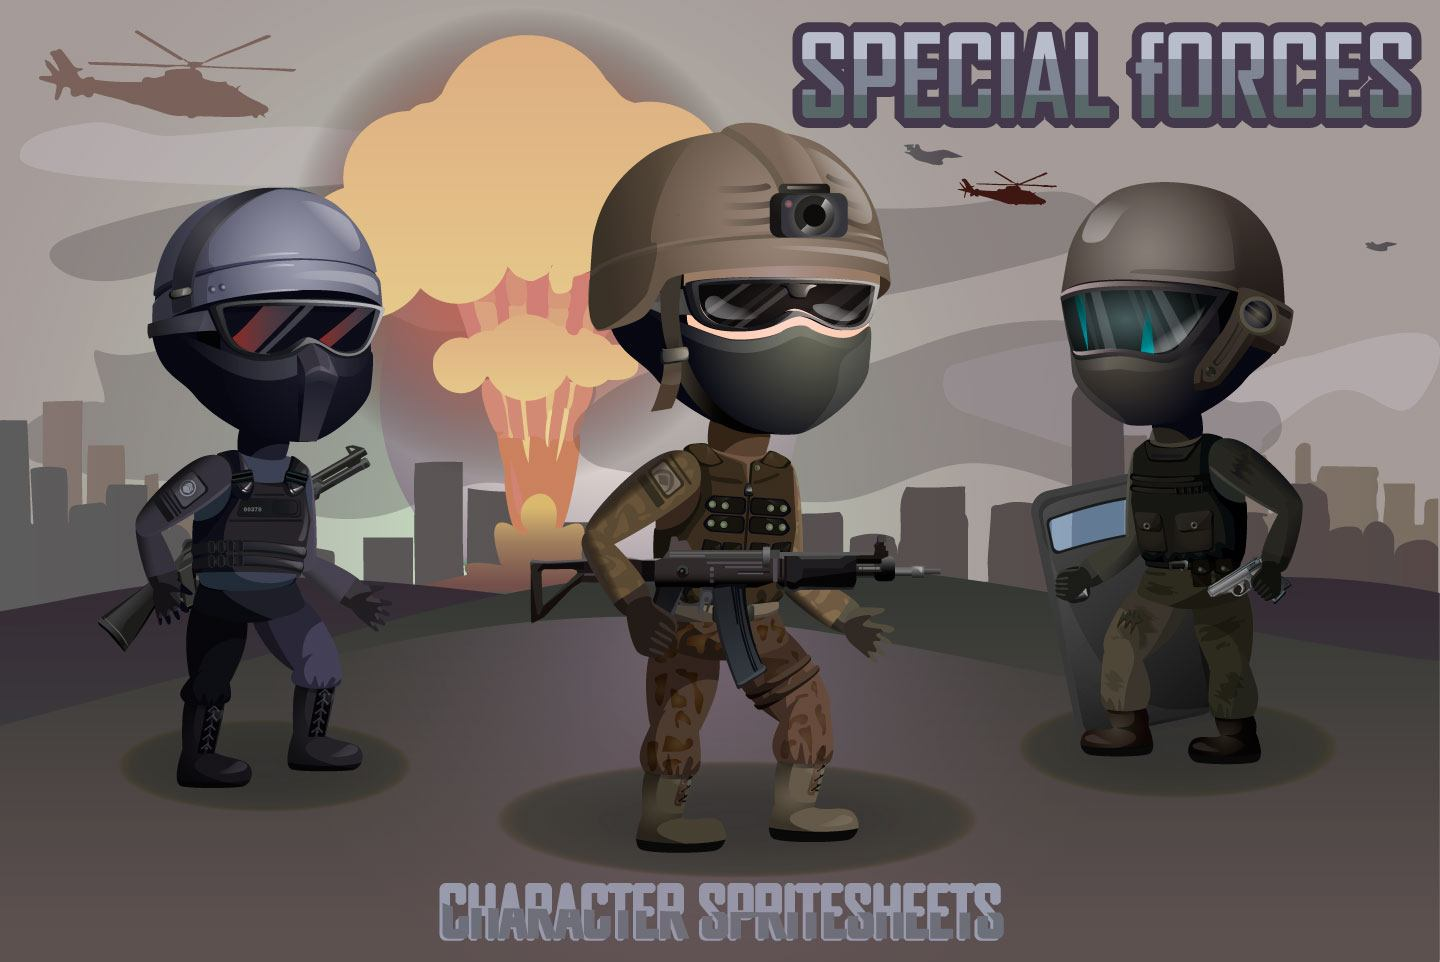 2D Game Special Forces Character Sprites Sheets